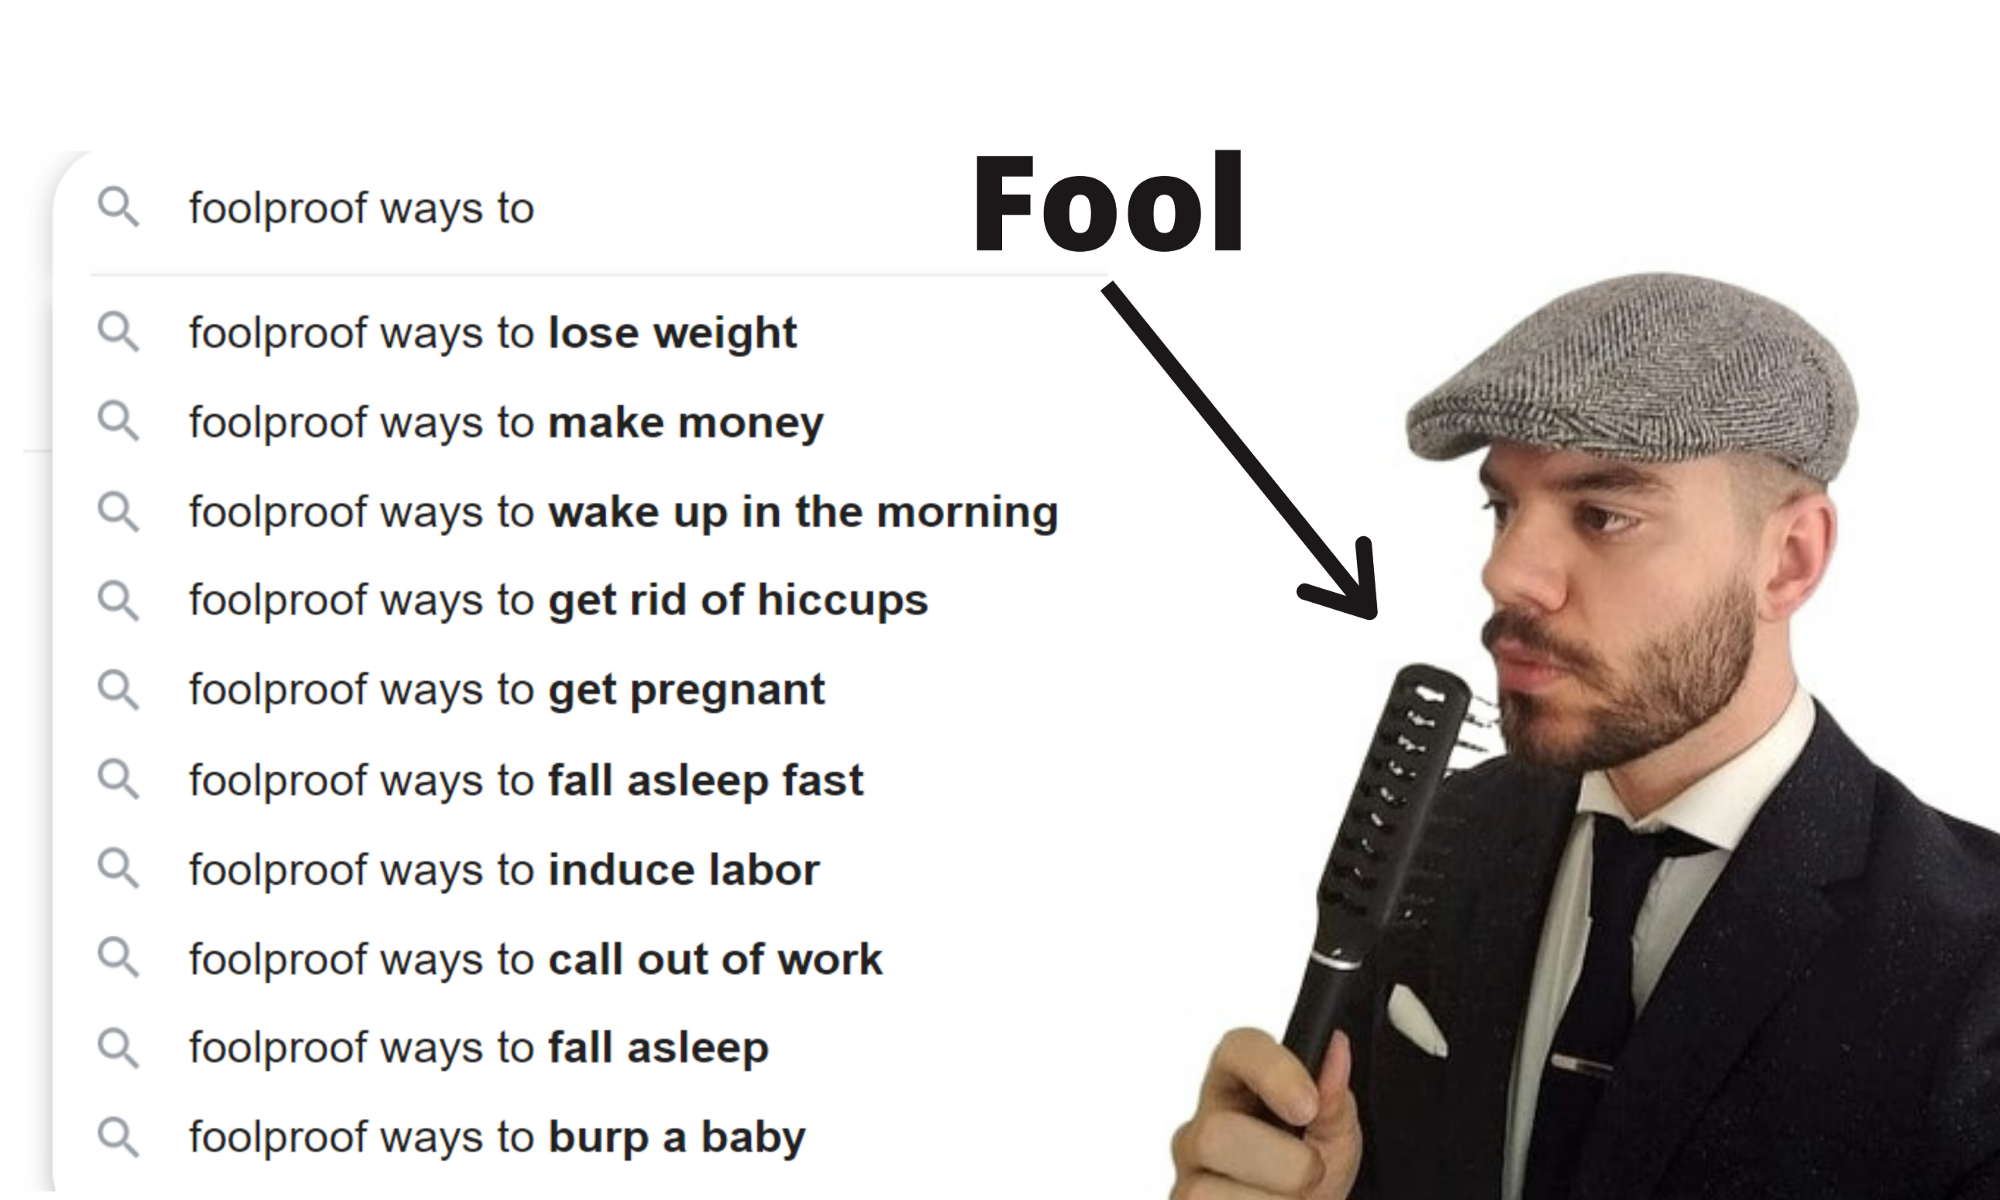 google search results for 'foolproof ways to'